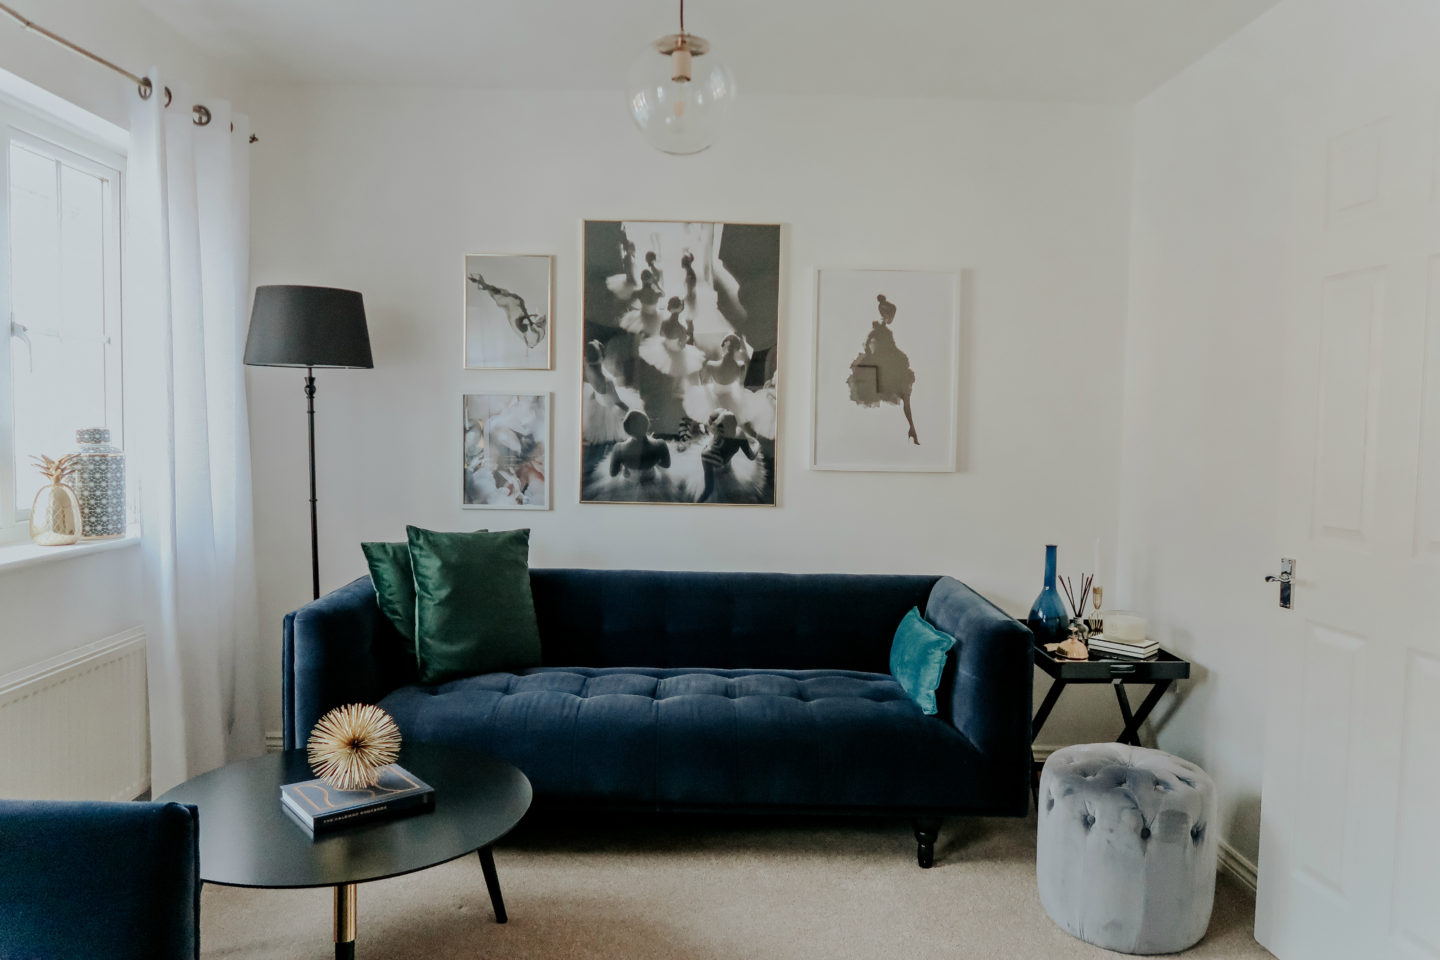 How we decorated our living room (without spending a fortune)